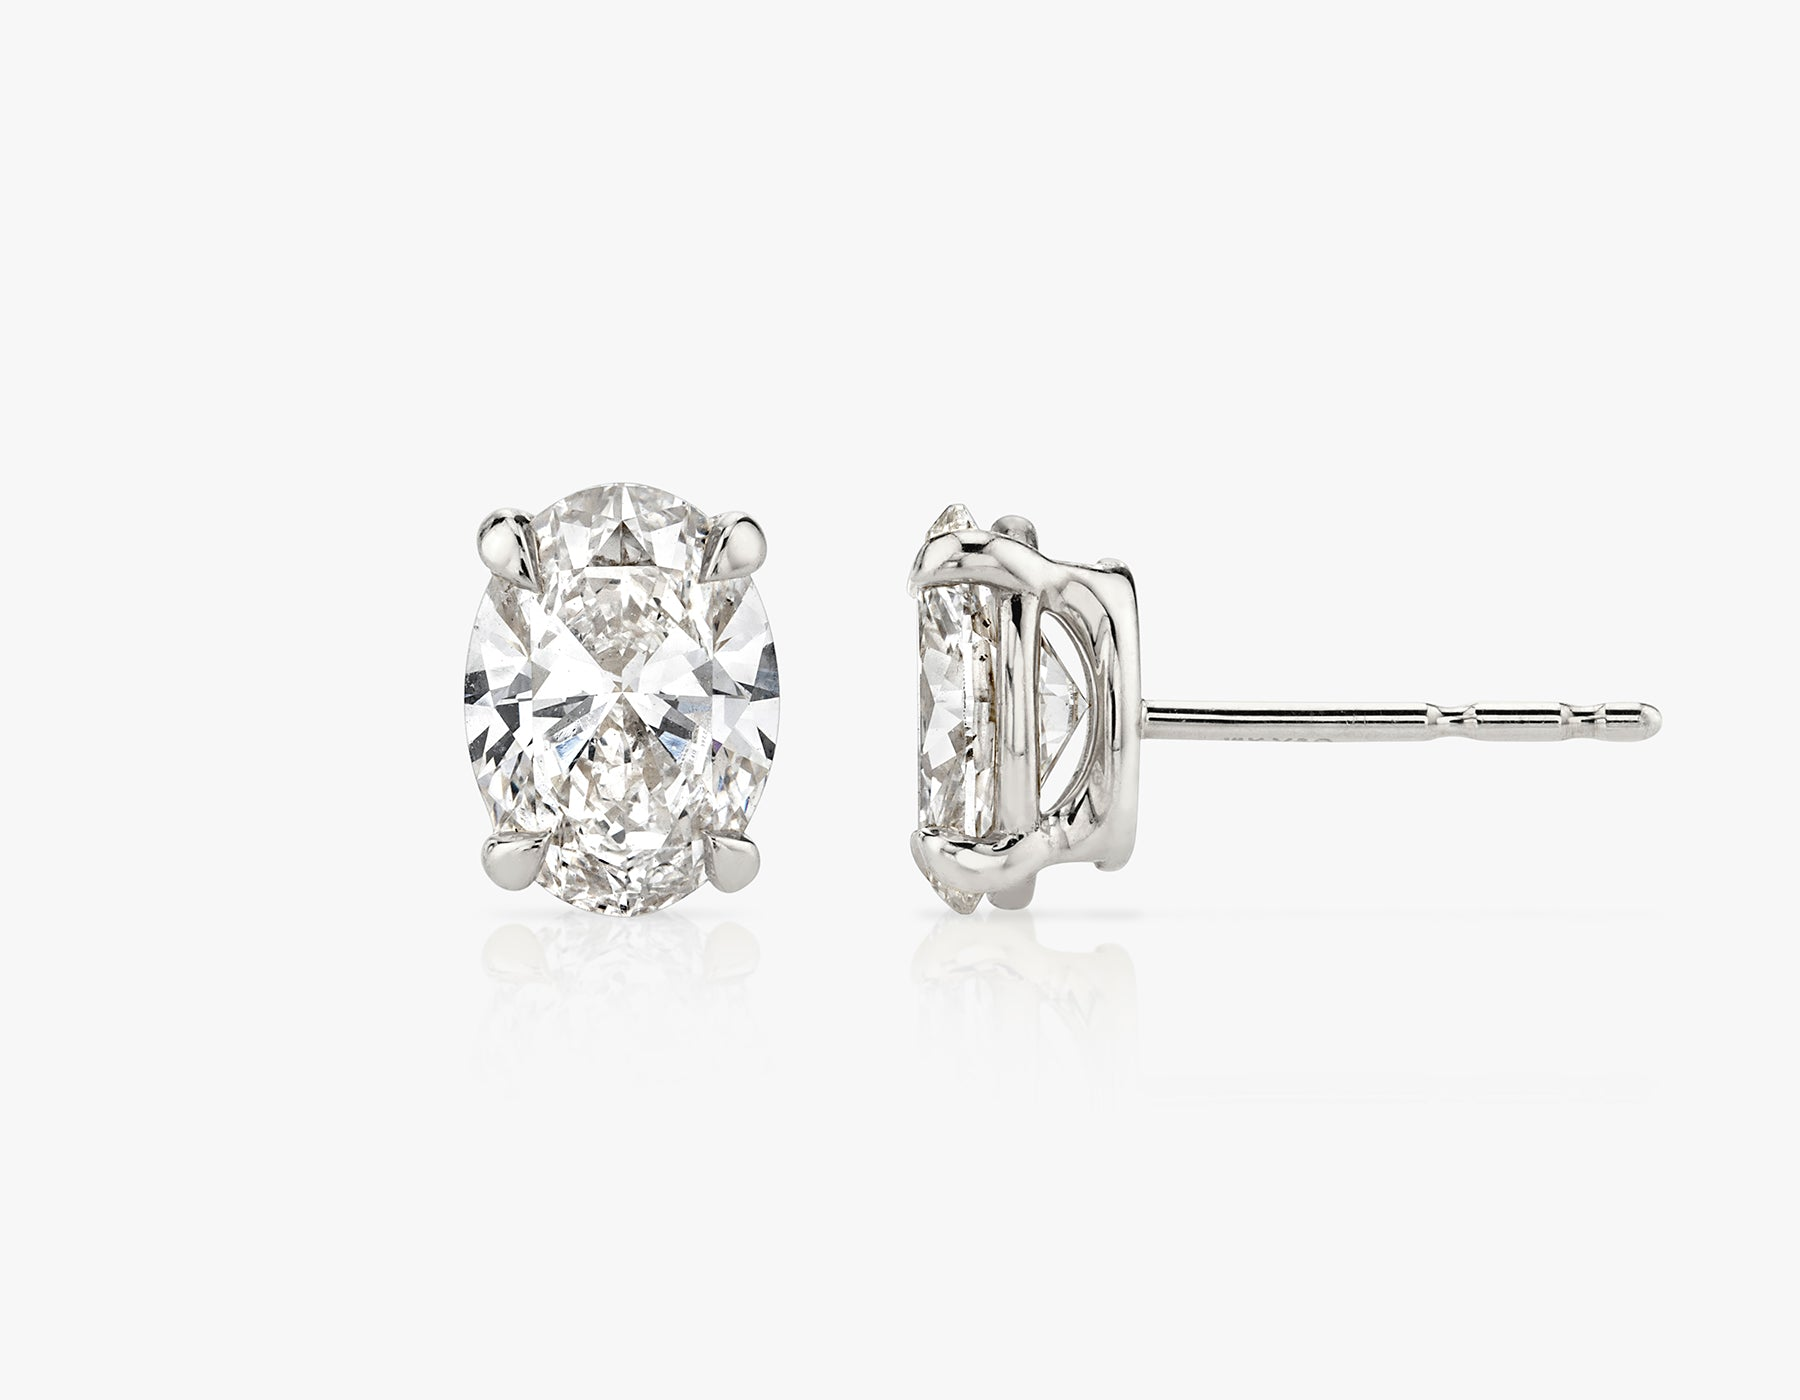 Vrai 1ct Solitaire Oval Created Diamond Studs, 14K White Gold